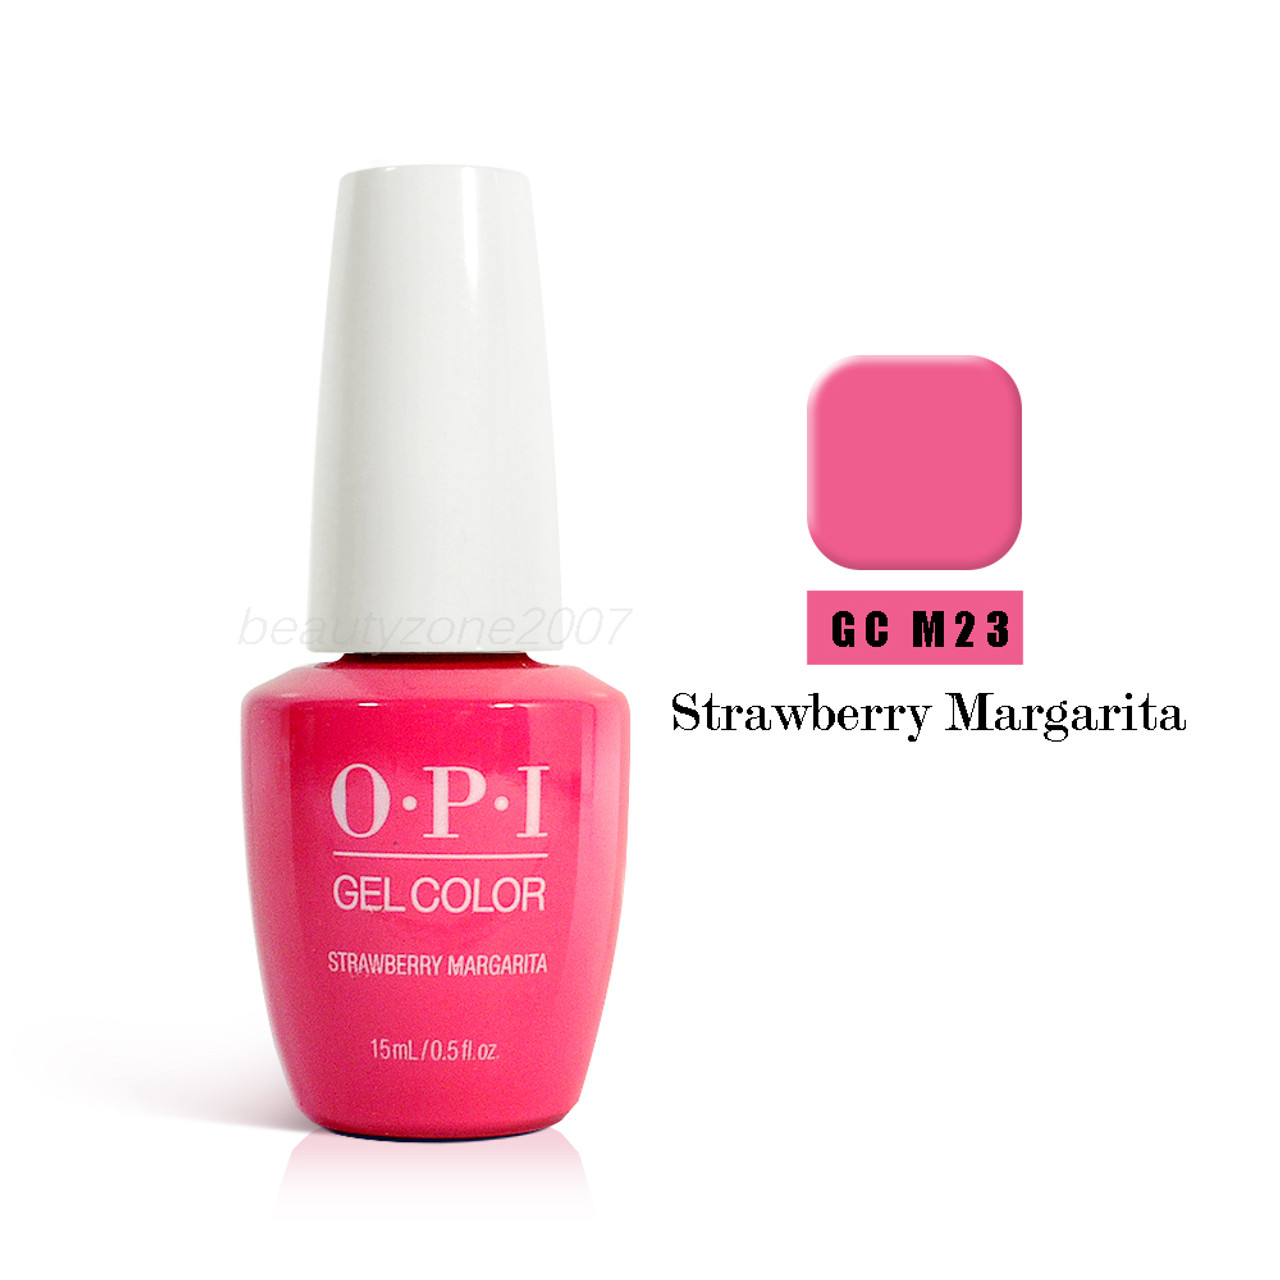 Opi Soak Off Gelcolor Gc M23 Strawberry Margarita 0 5oz Beautychain